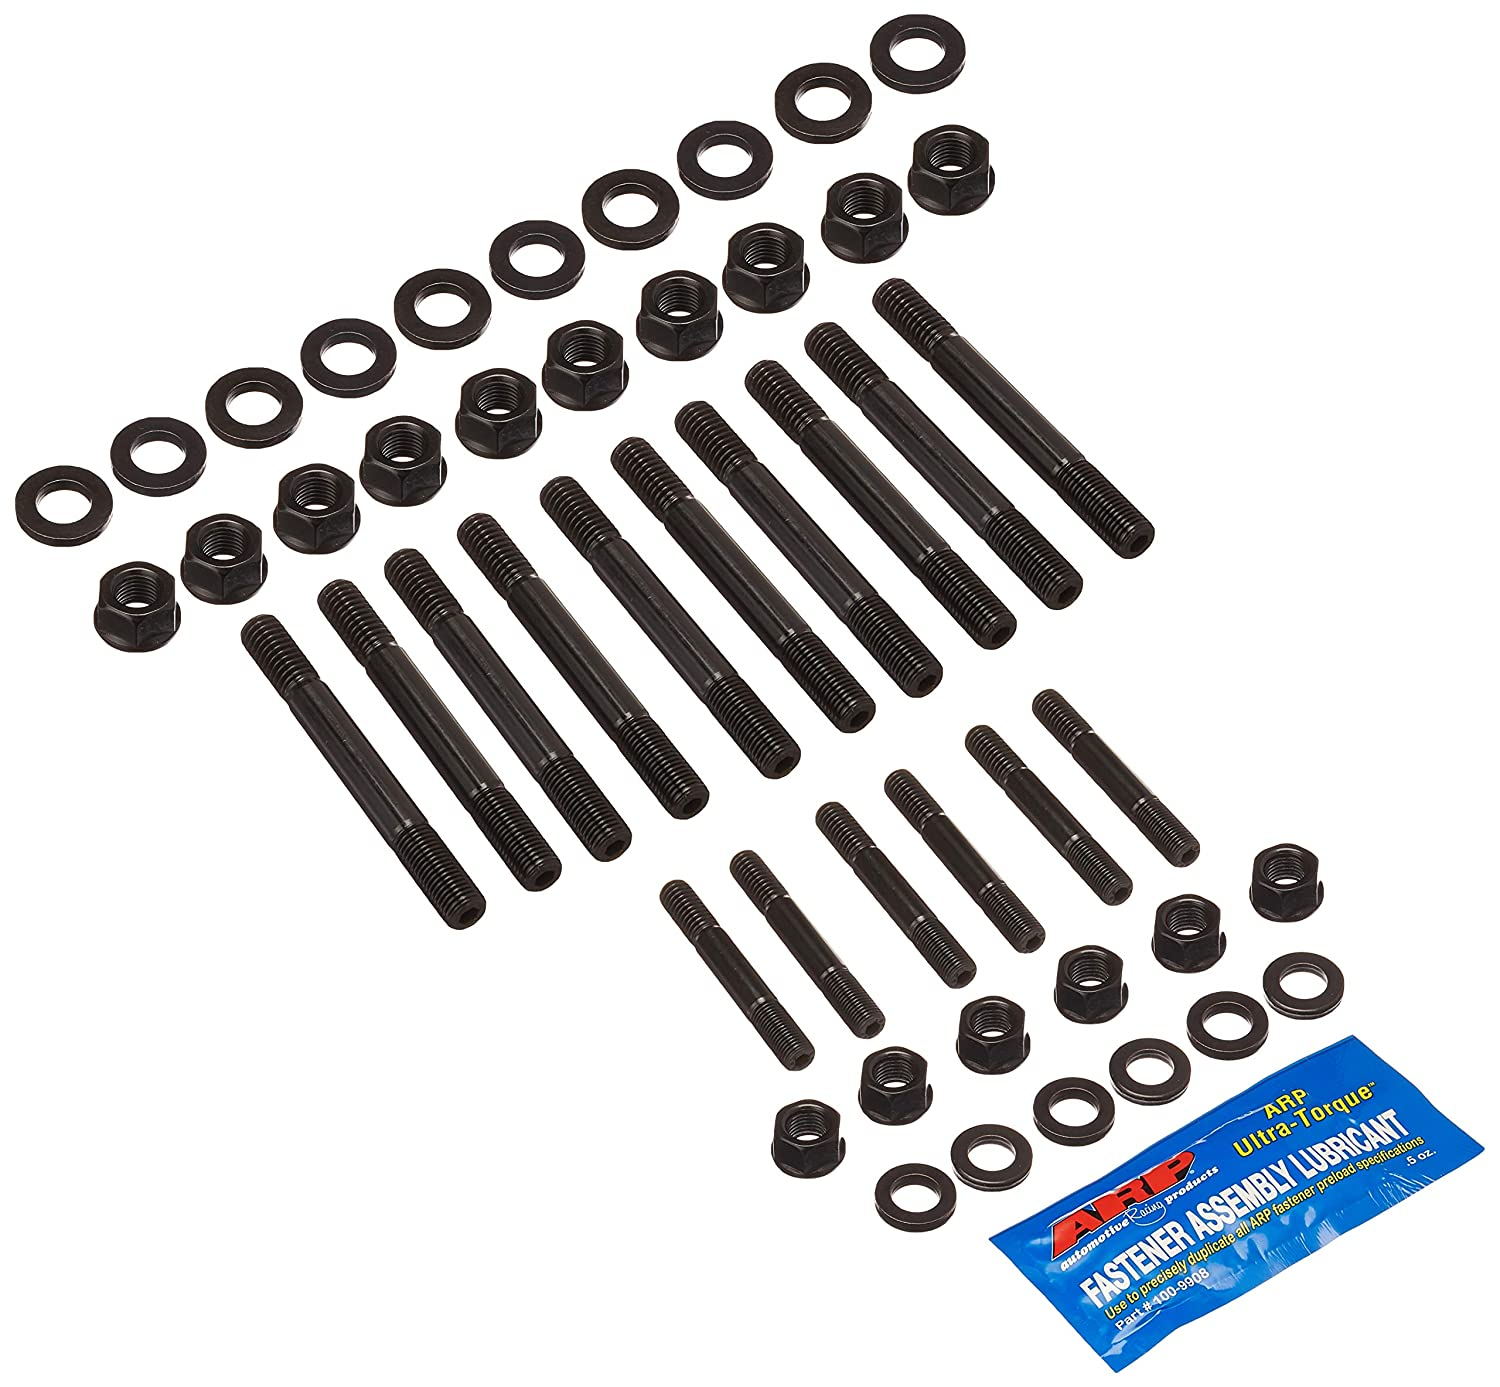 ARP Main Stud Kit 134-5605